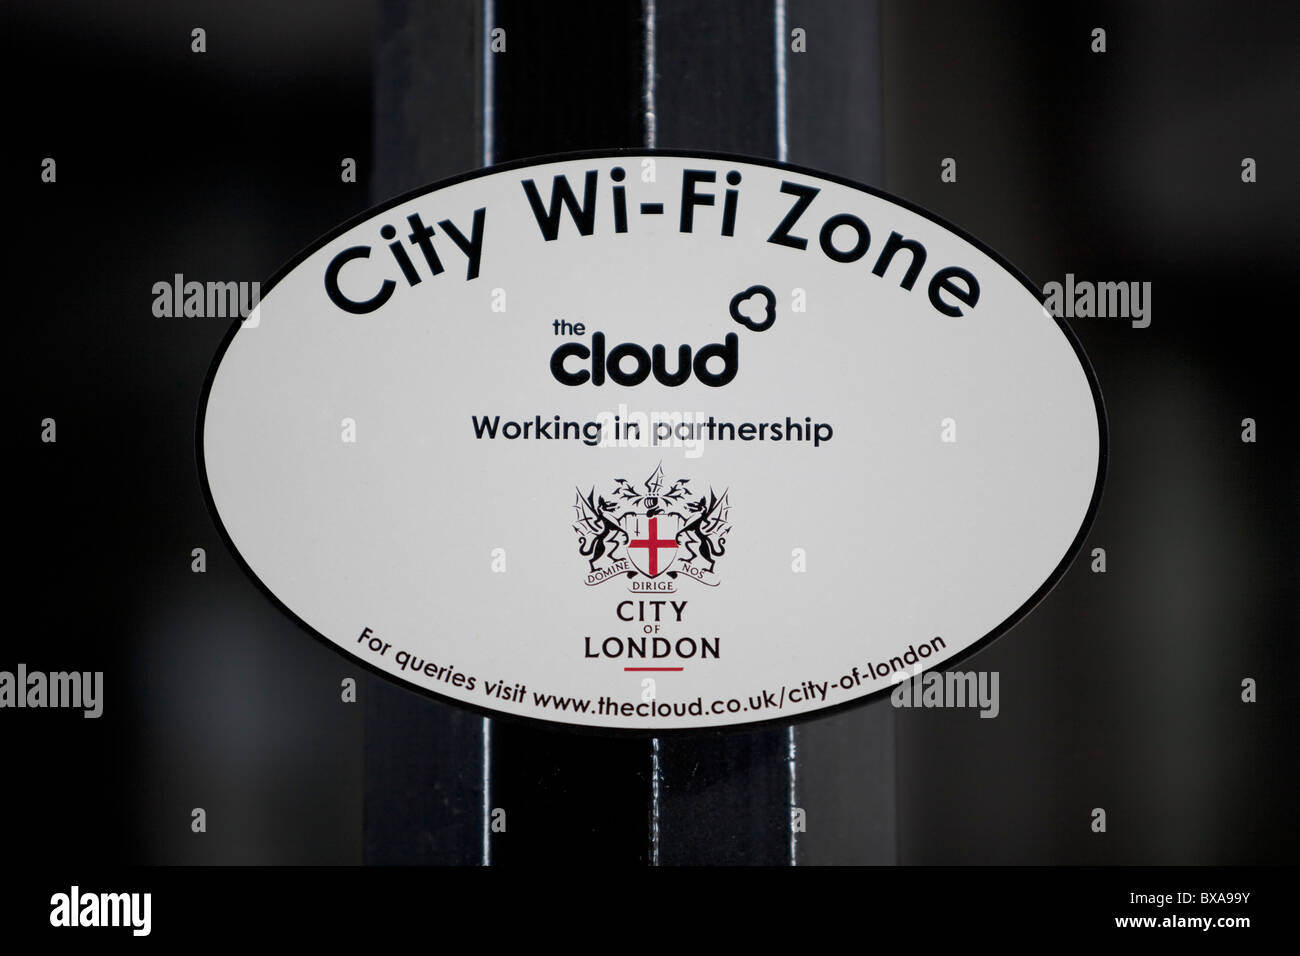 The cloud wi fi zone sign, London, UK - Stock Image